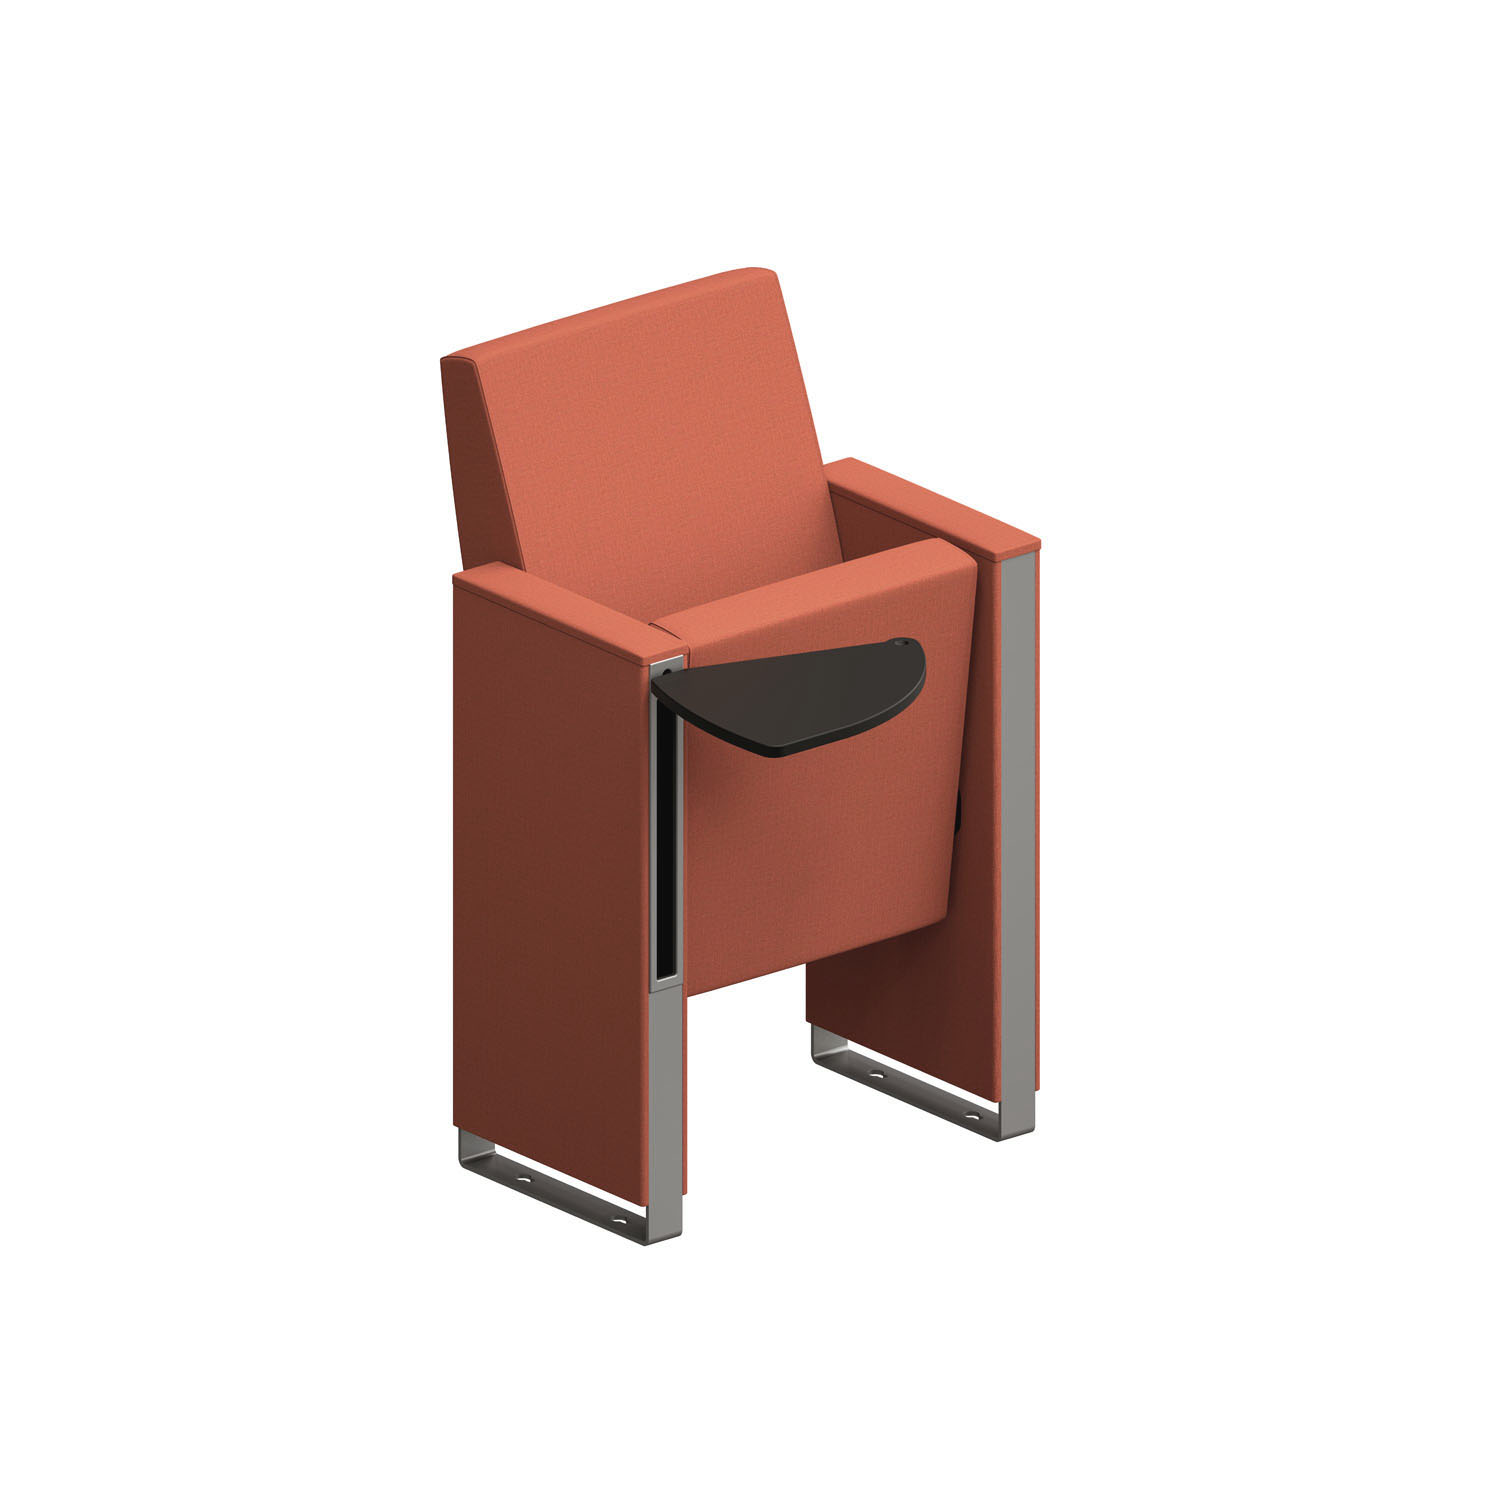 LAMM C100 Conference Chair | Woodwood Group